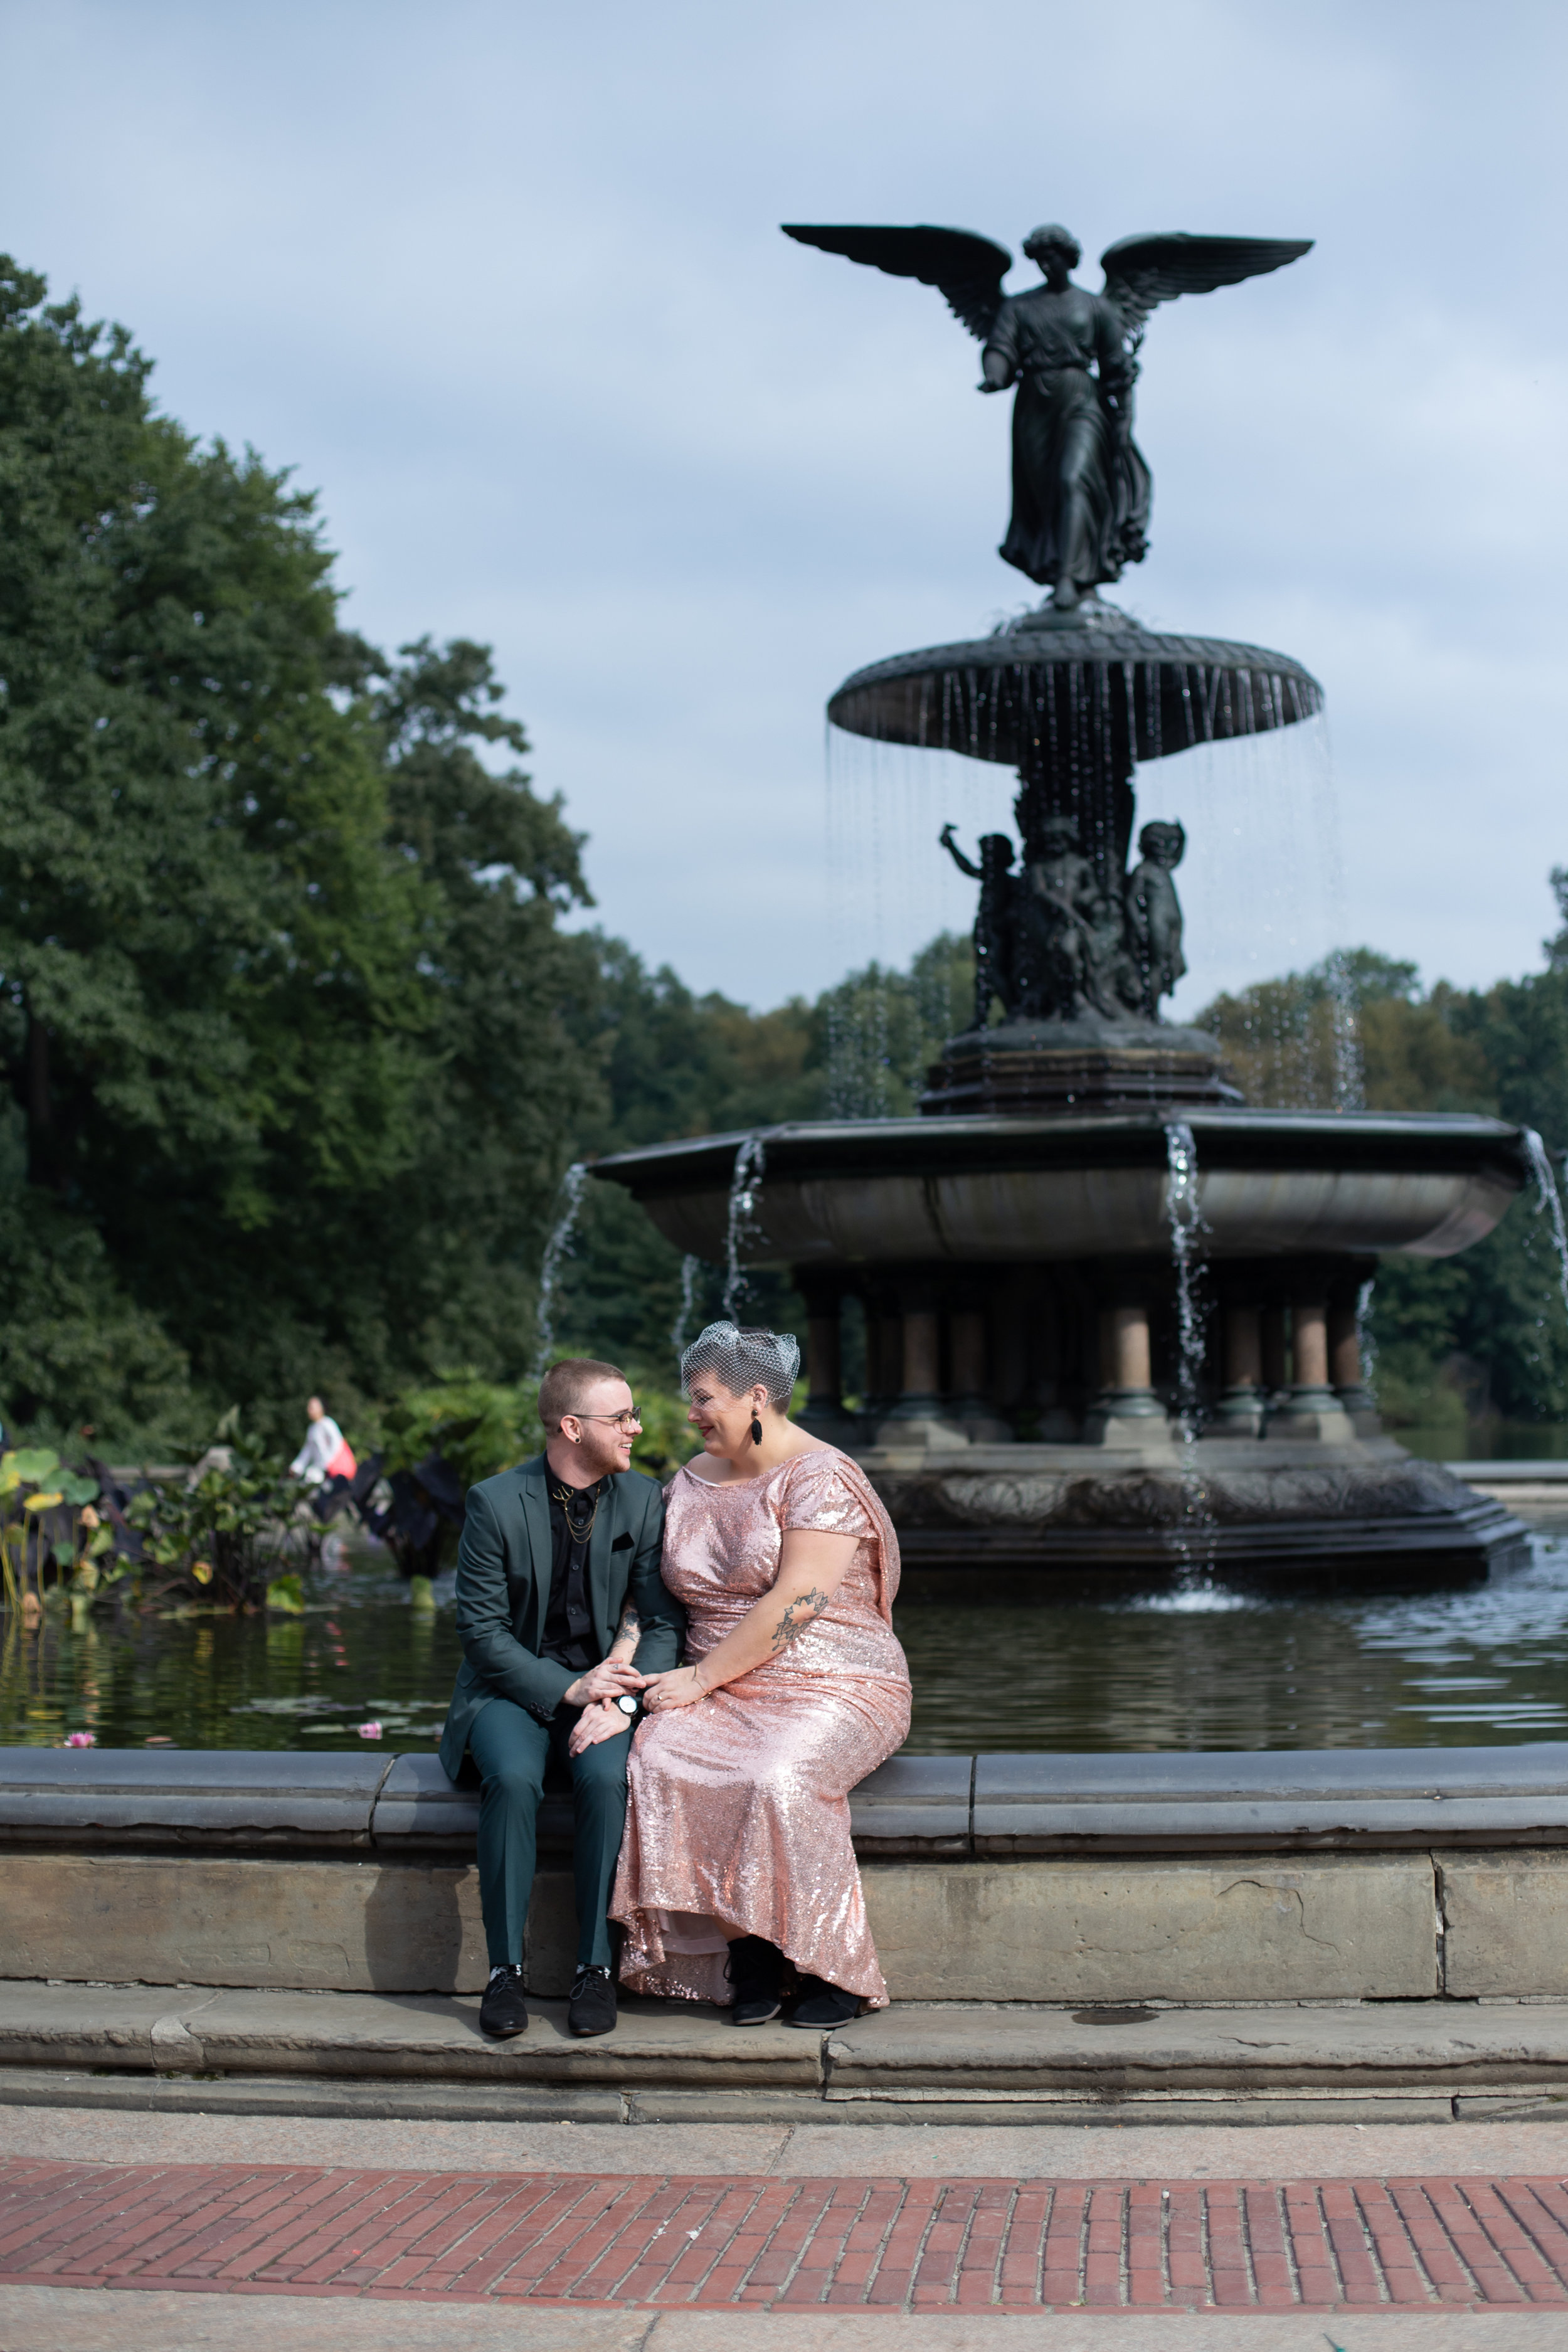 Kate-Alison-Photography-Central-Park-Elopement-Natty-Morgan-16.jpg